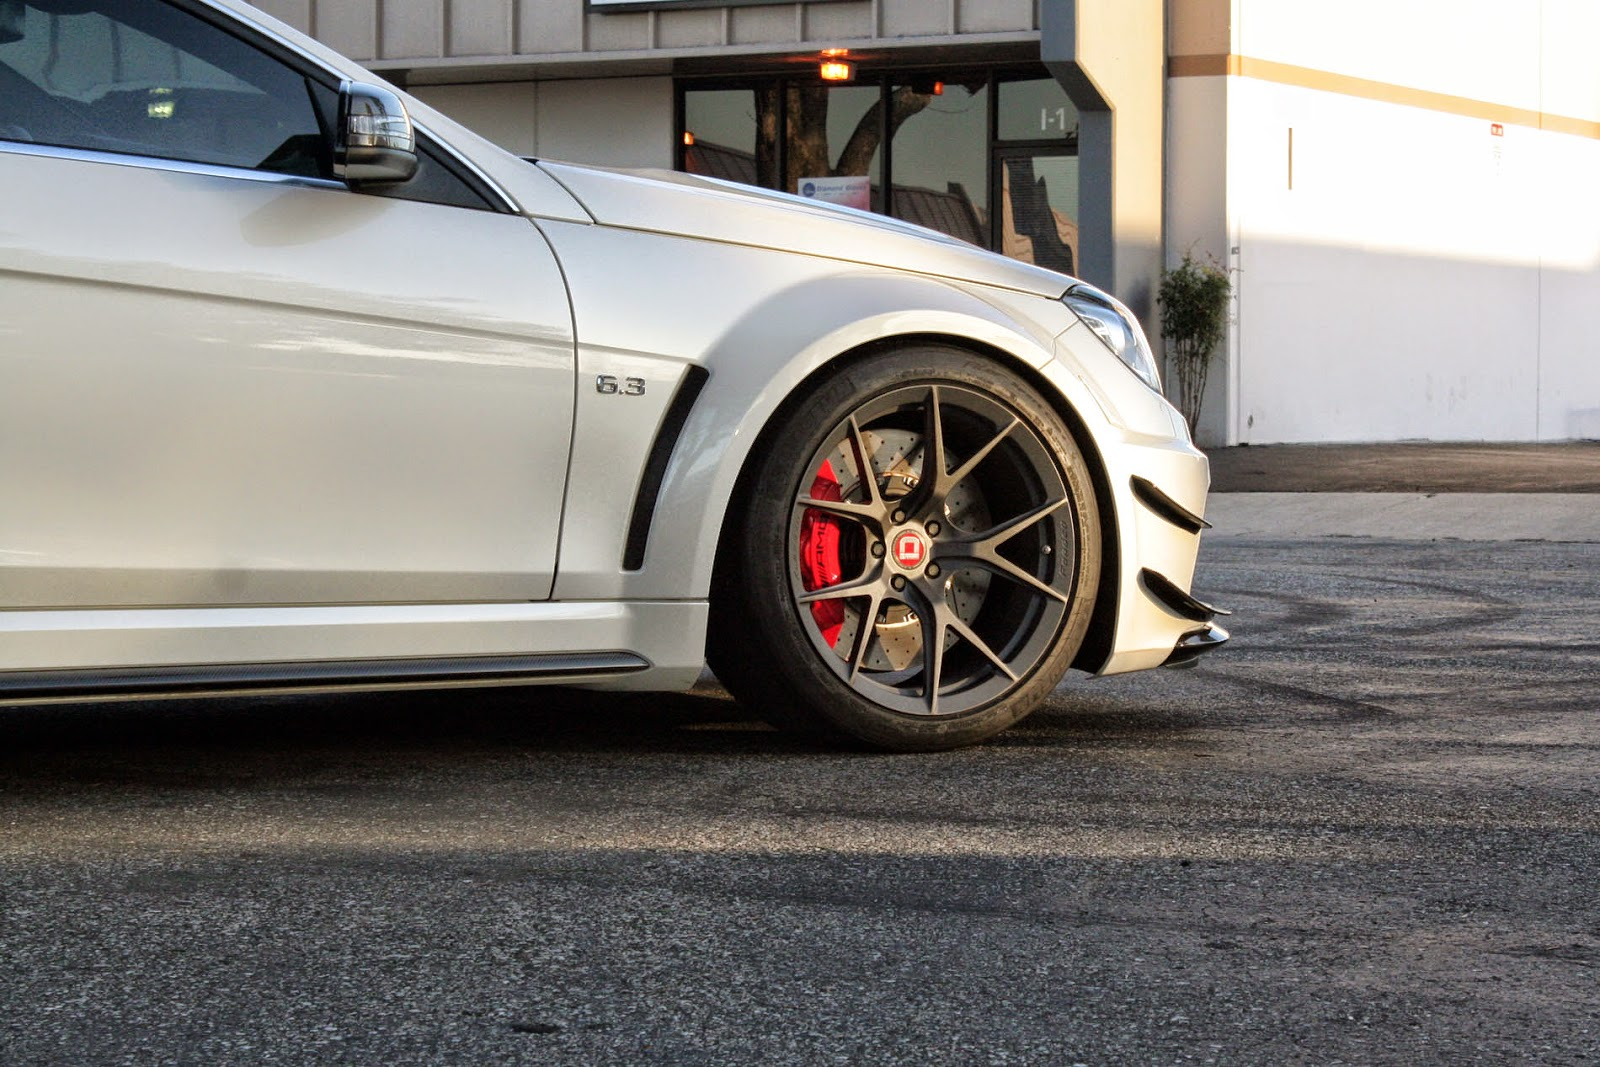 Mercedes benz w204 c63 amg black series on klassen wheels for Amg wheels for mercedes benz